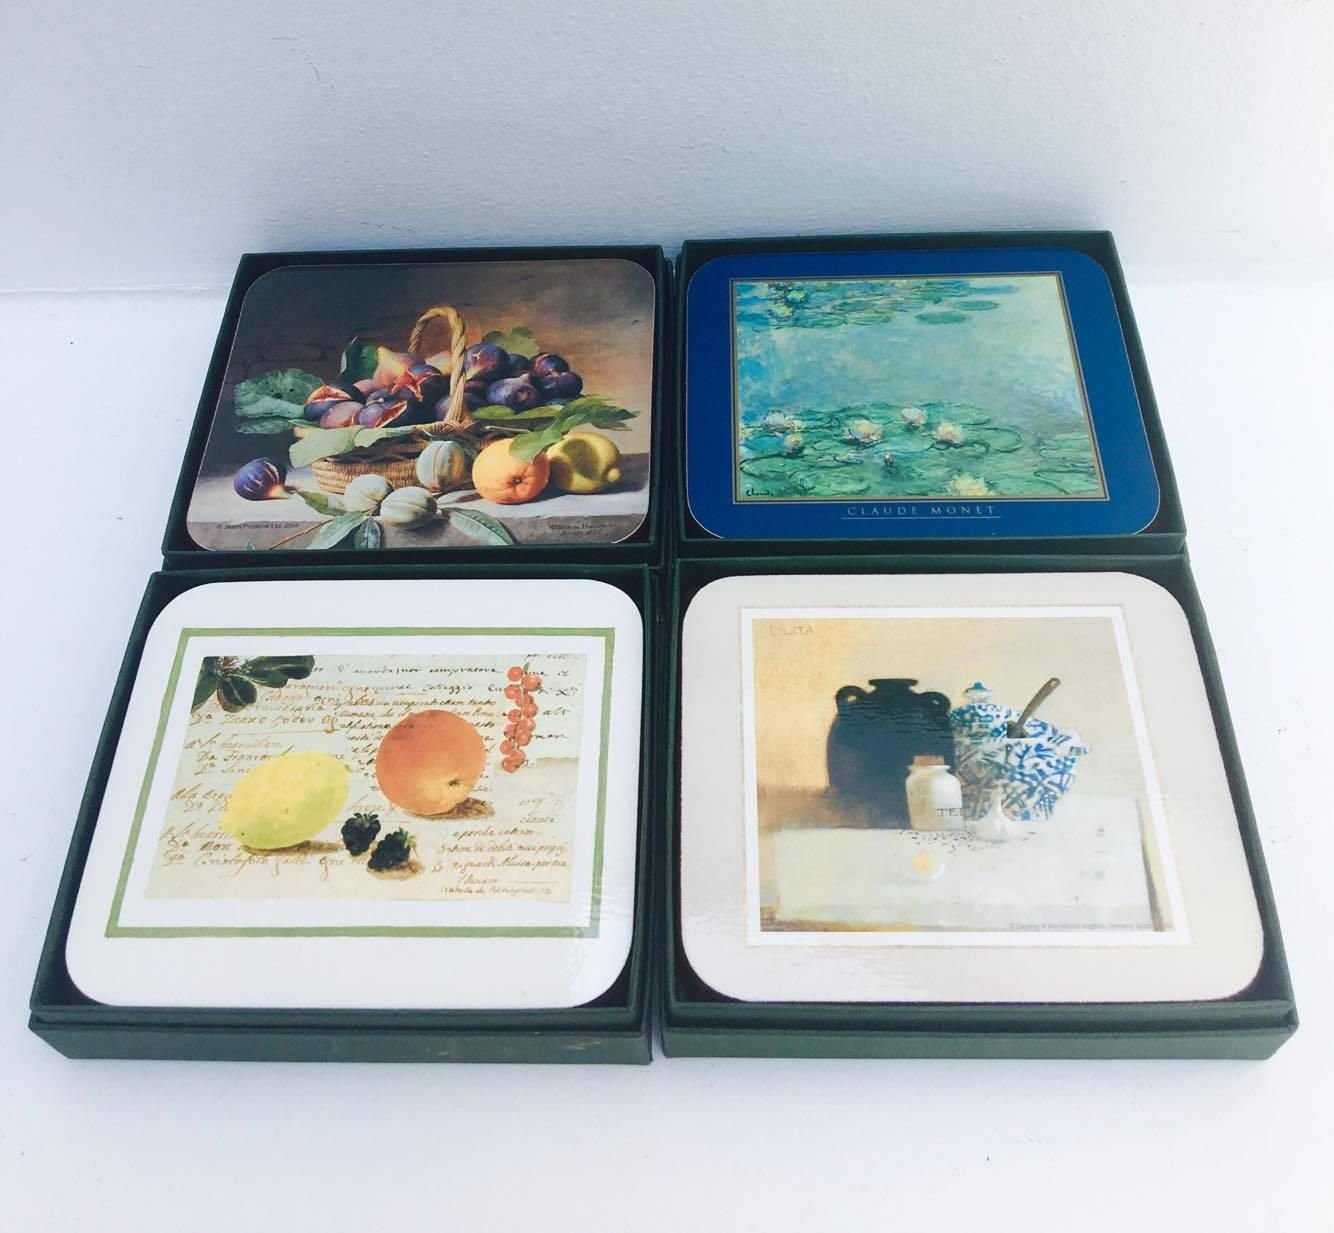 Coasters By Jason Set Of Six 4 Boxes With Differents Designs All Boxed As New Cork Coasters Hardboard Costers 1 By Isabelle De Borchgrave Cork Coasters Coasters Design